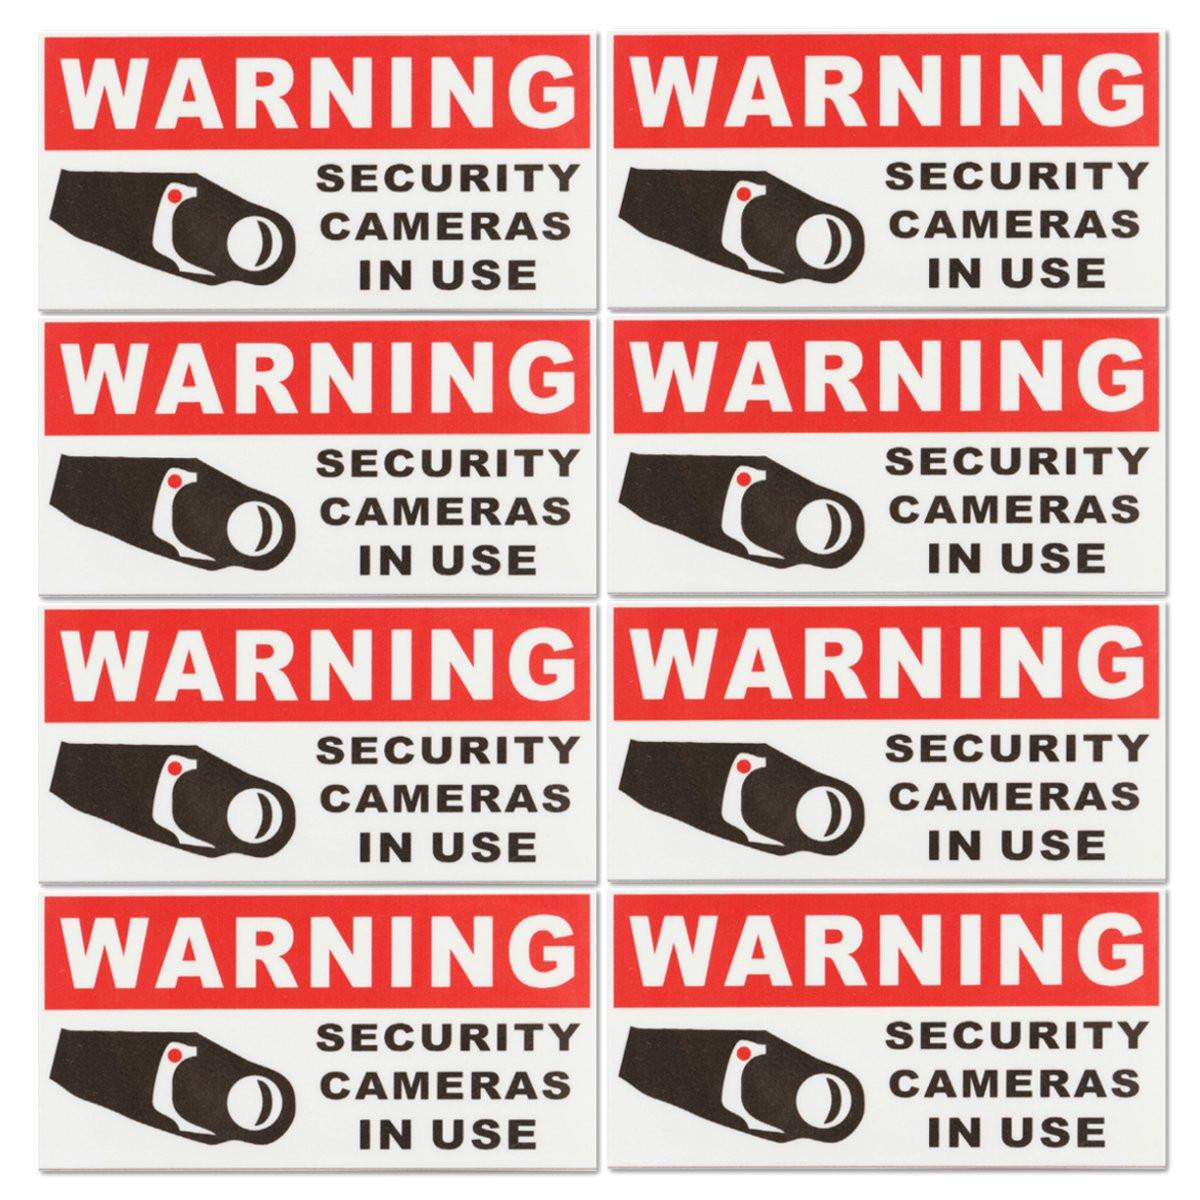 NEW 8Pcs SECURITY CAMERA IN USE  Waterproof Self-adhensive Warning Stickers Safety Signs Decal